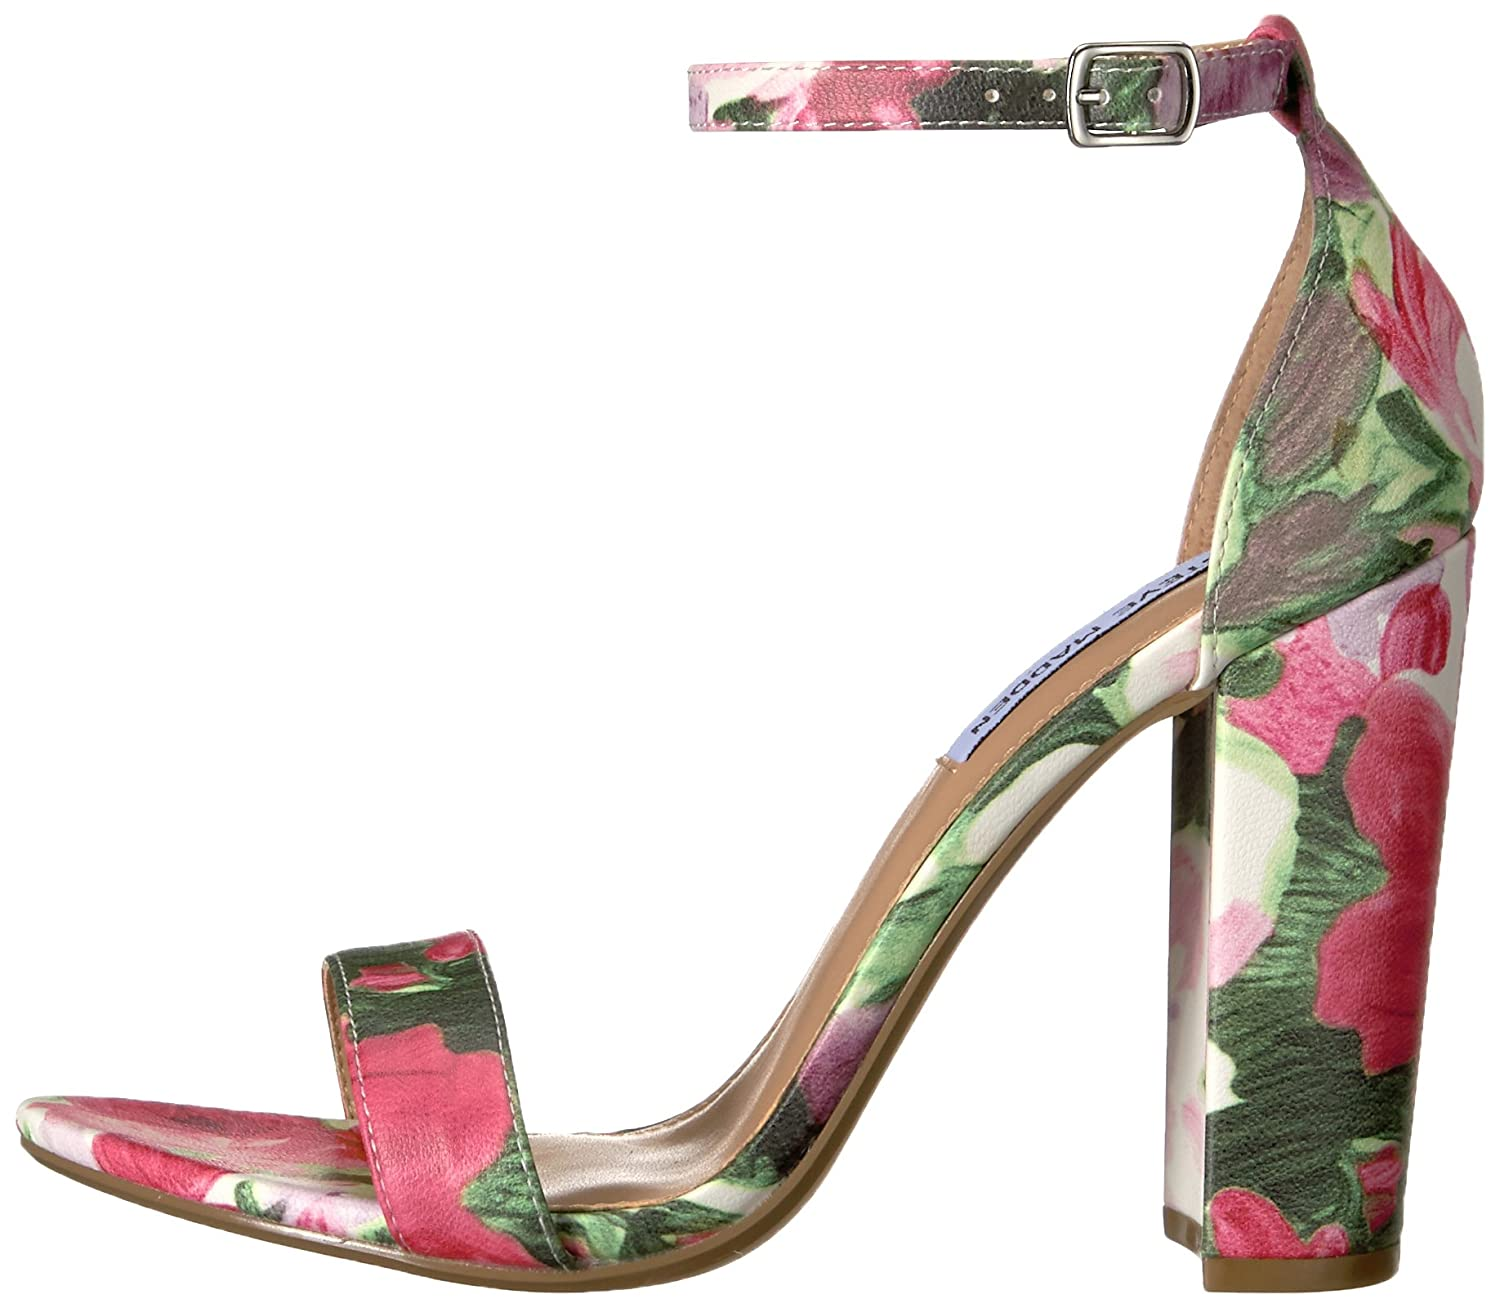 Steve Madden Women's Carrson Dress US|Floral Sandal B01MDTRGPD 7.5 B(M) US|Floral Dress Multi 5d4c63